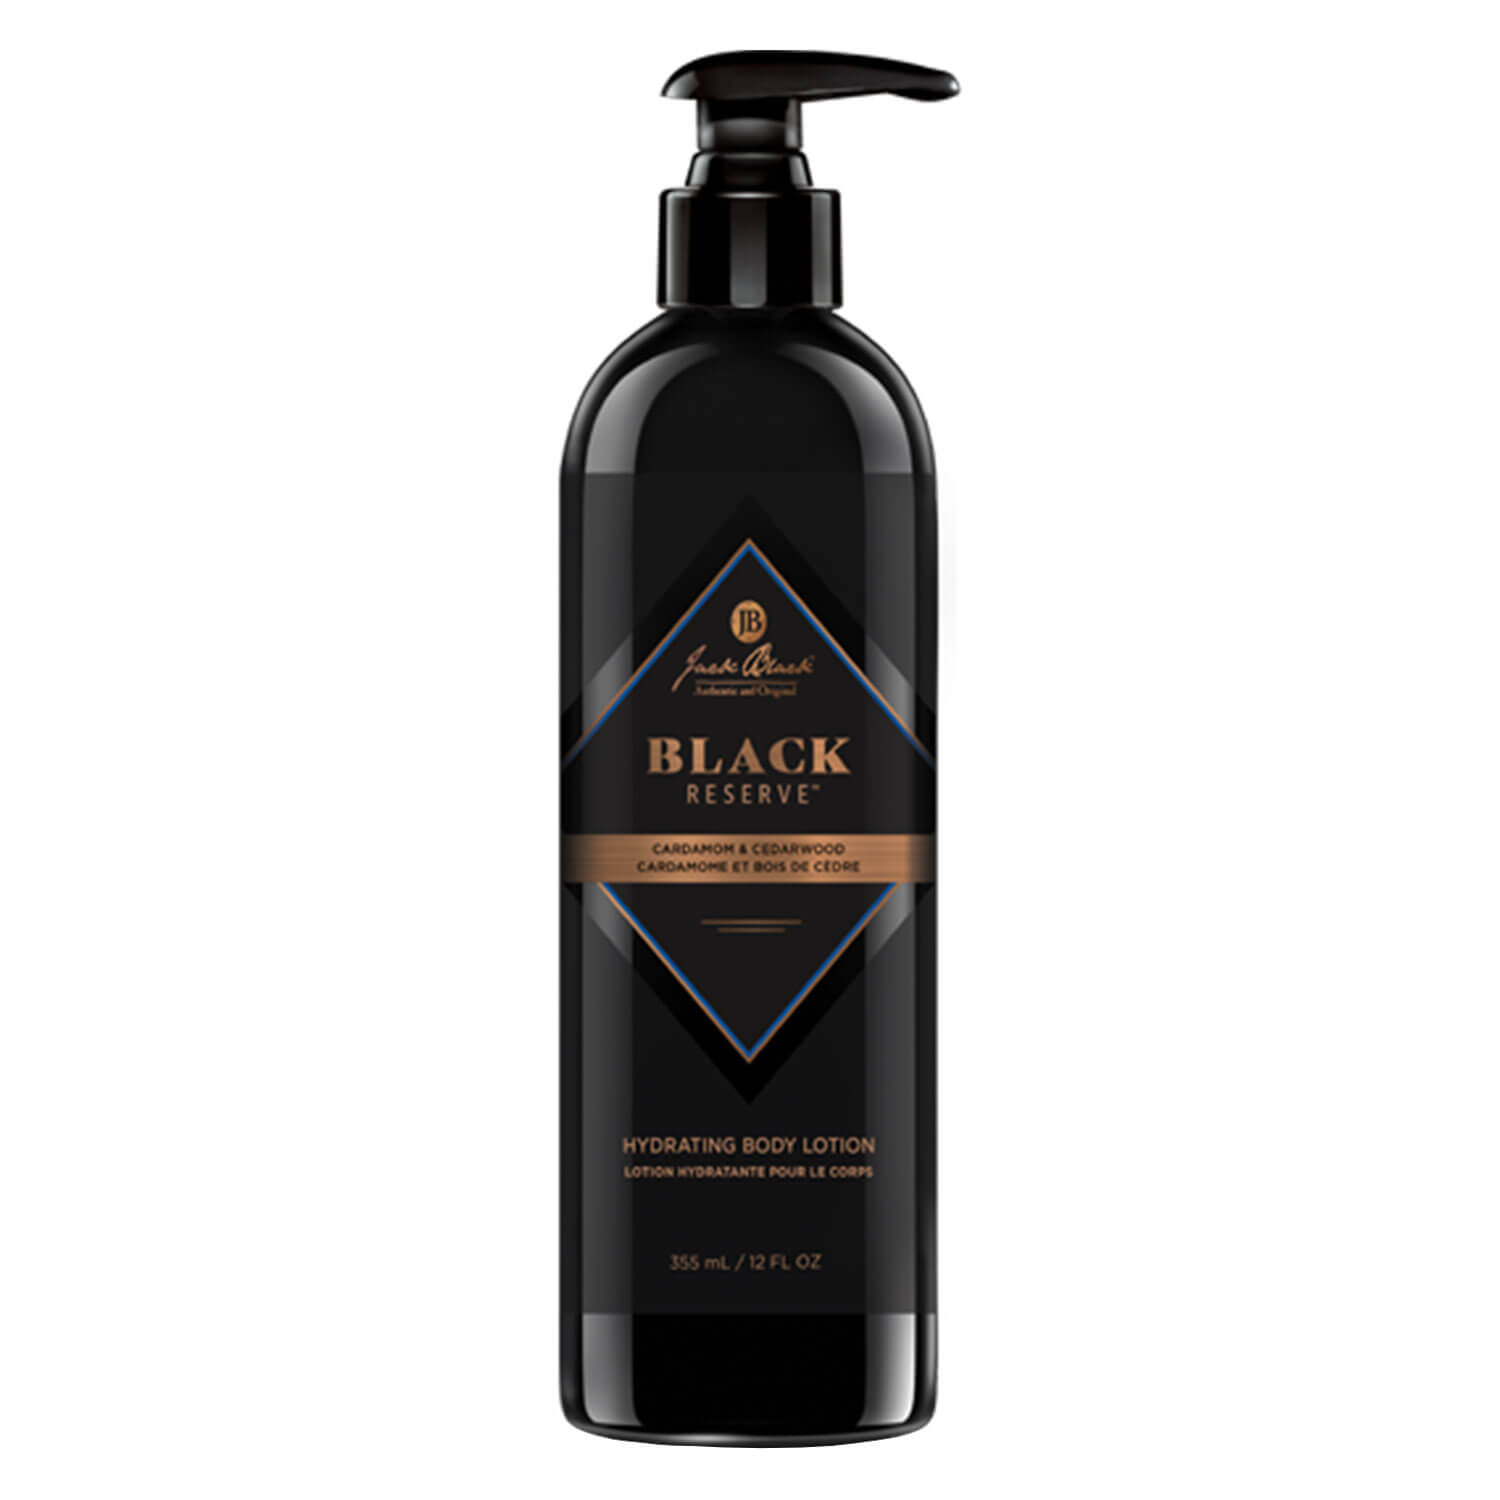 Black Reserve - Hydrating Body Lotion